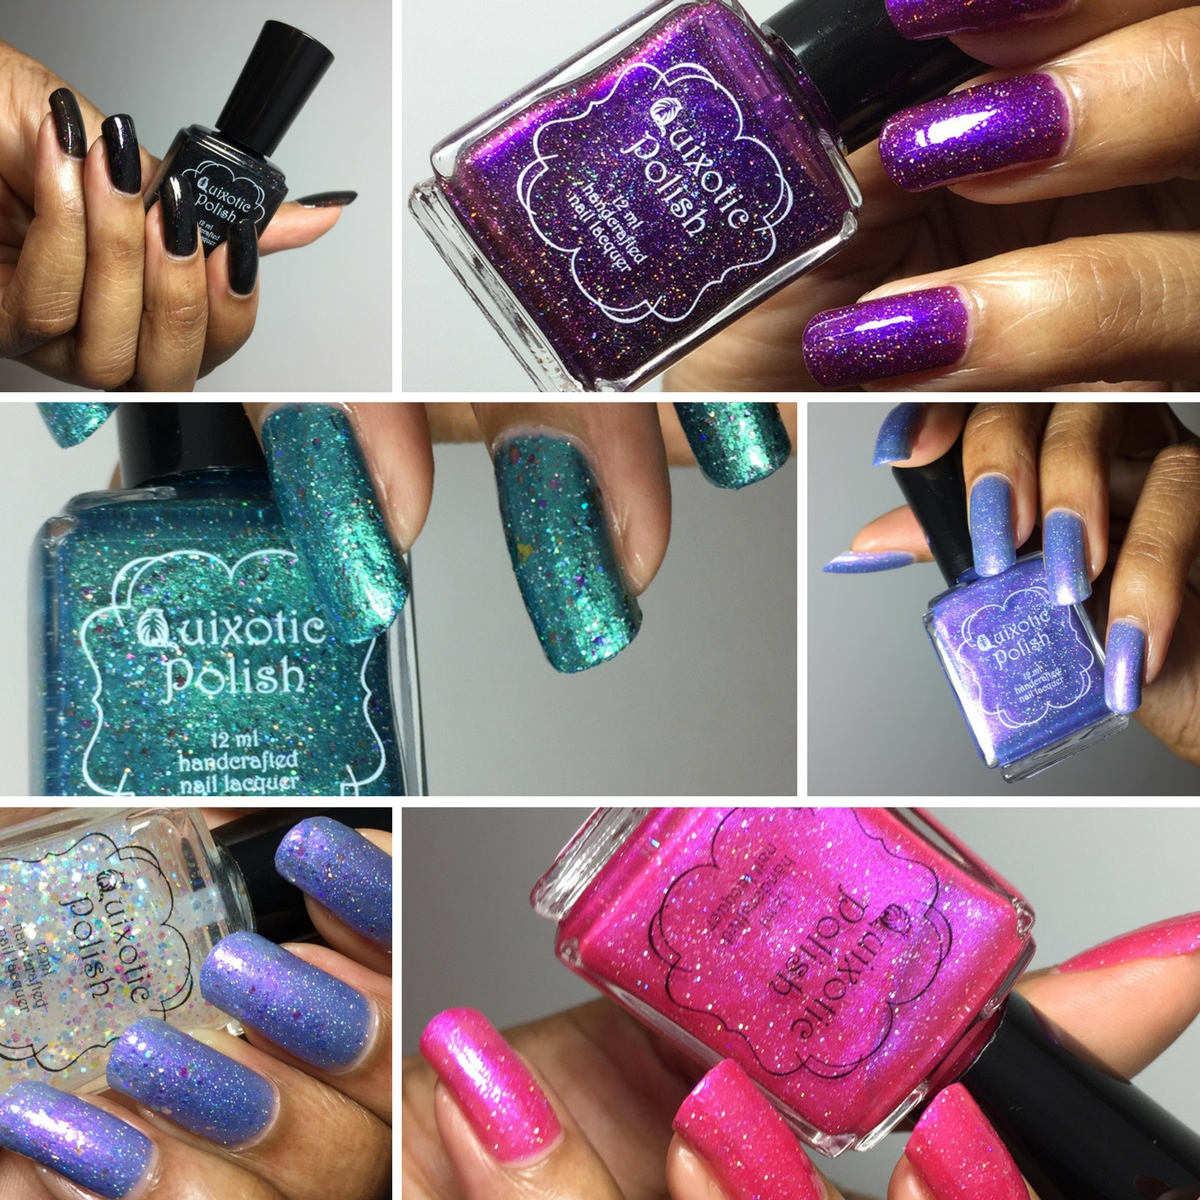 Quixotic Polish Debut Collection